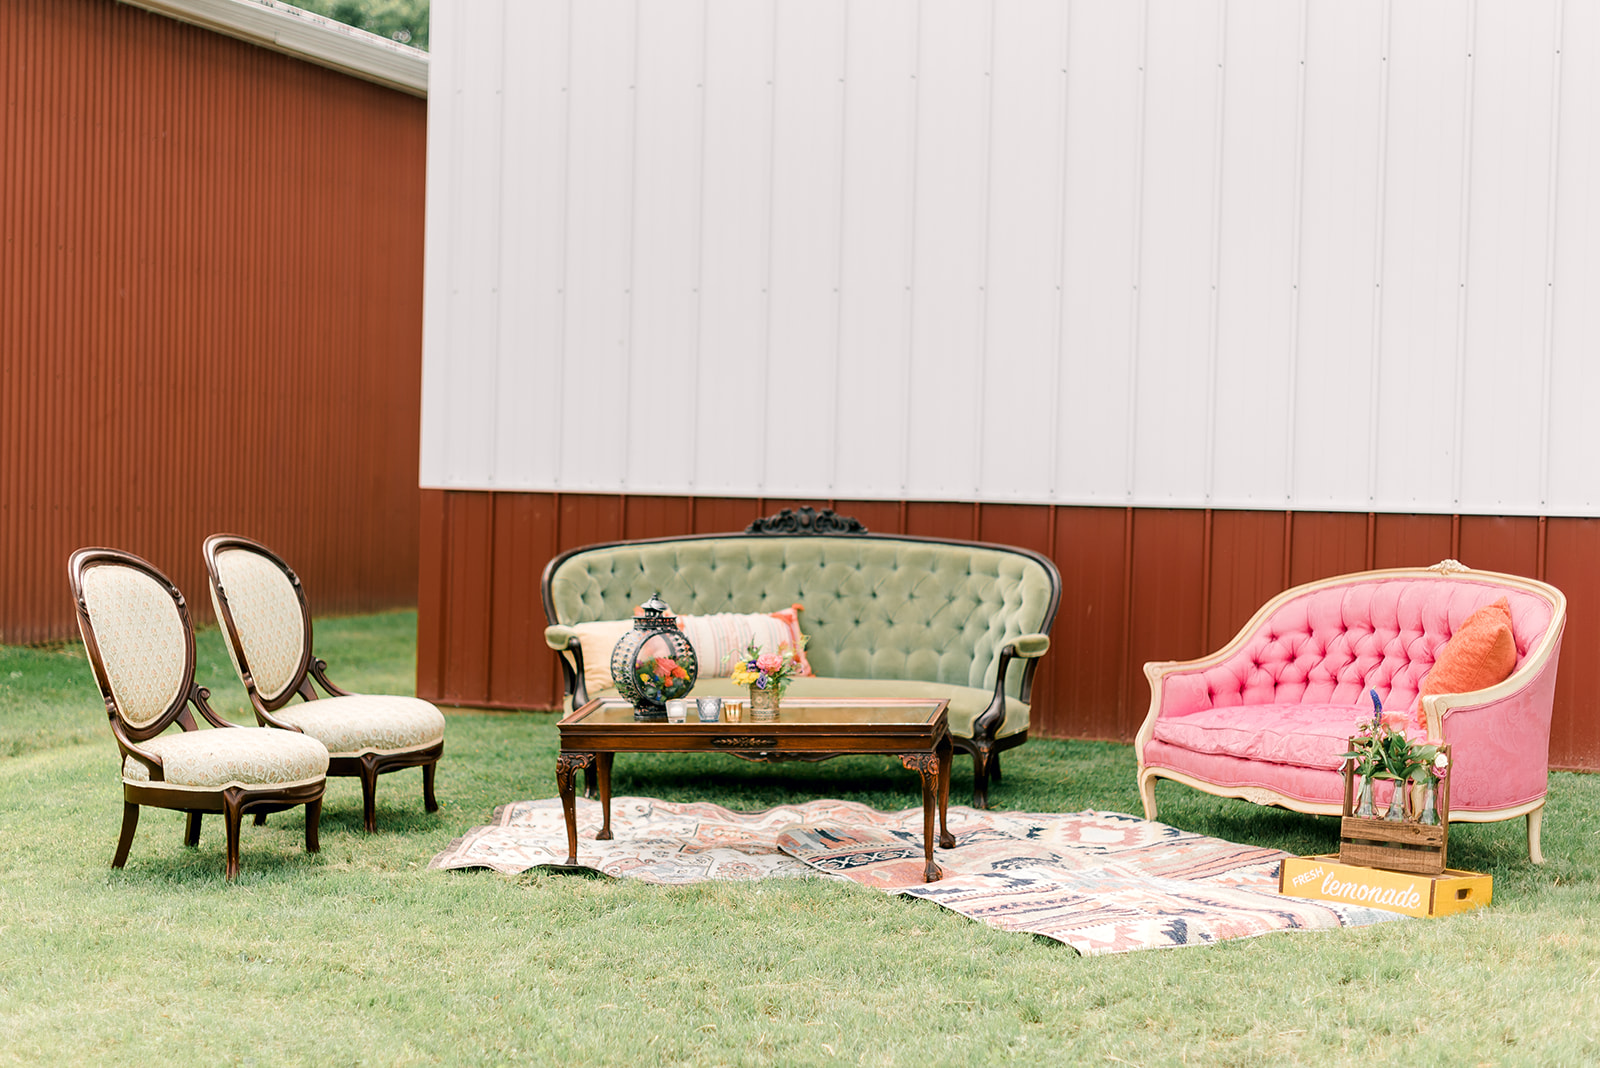 Fun & Colorful Barn Wedding Lounge at Heaven Sent Farms in Avella Dawn Derbyshire Photography (8).jpg